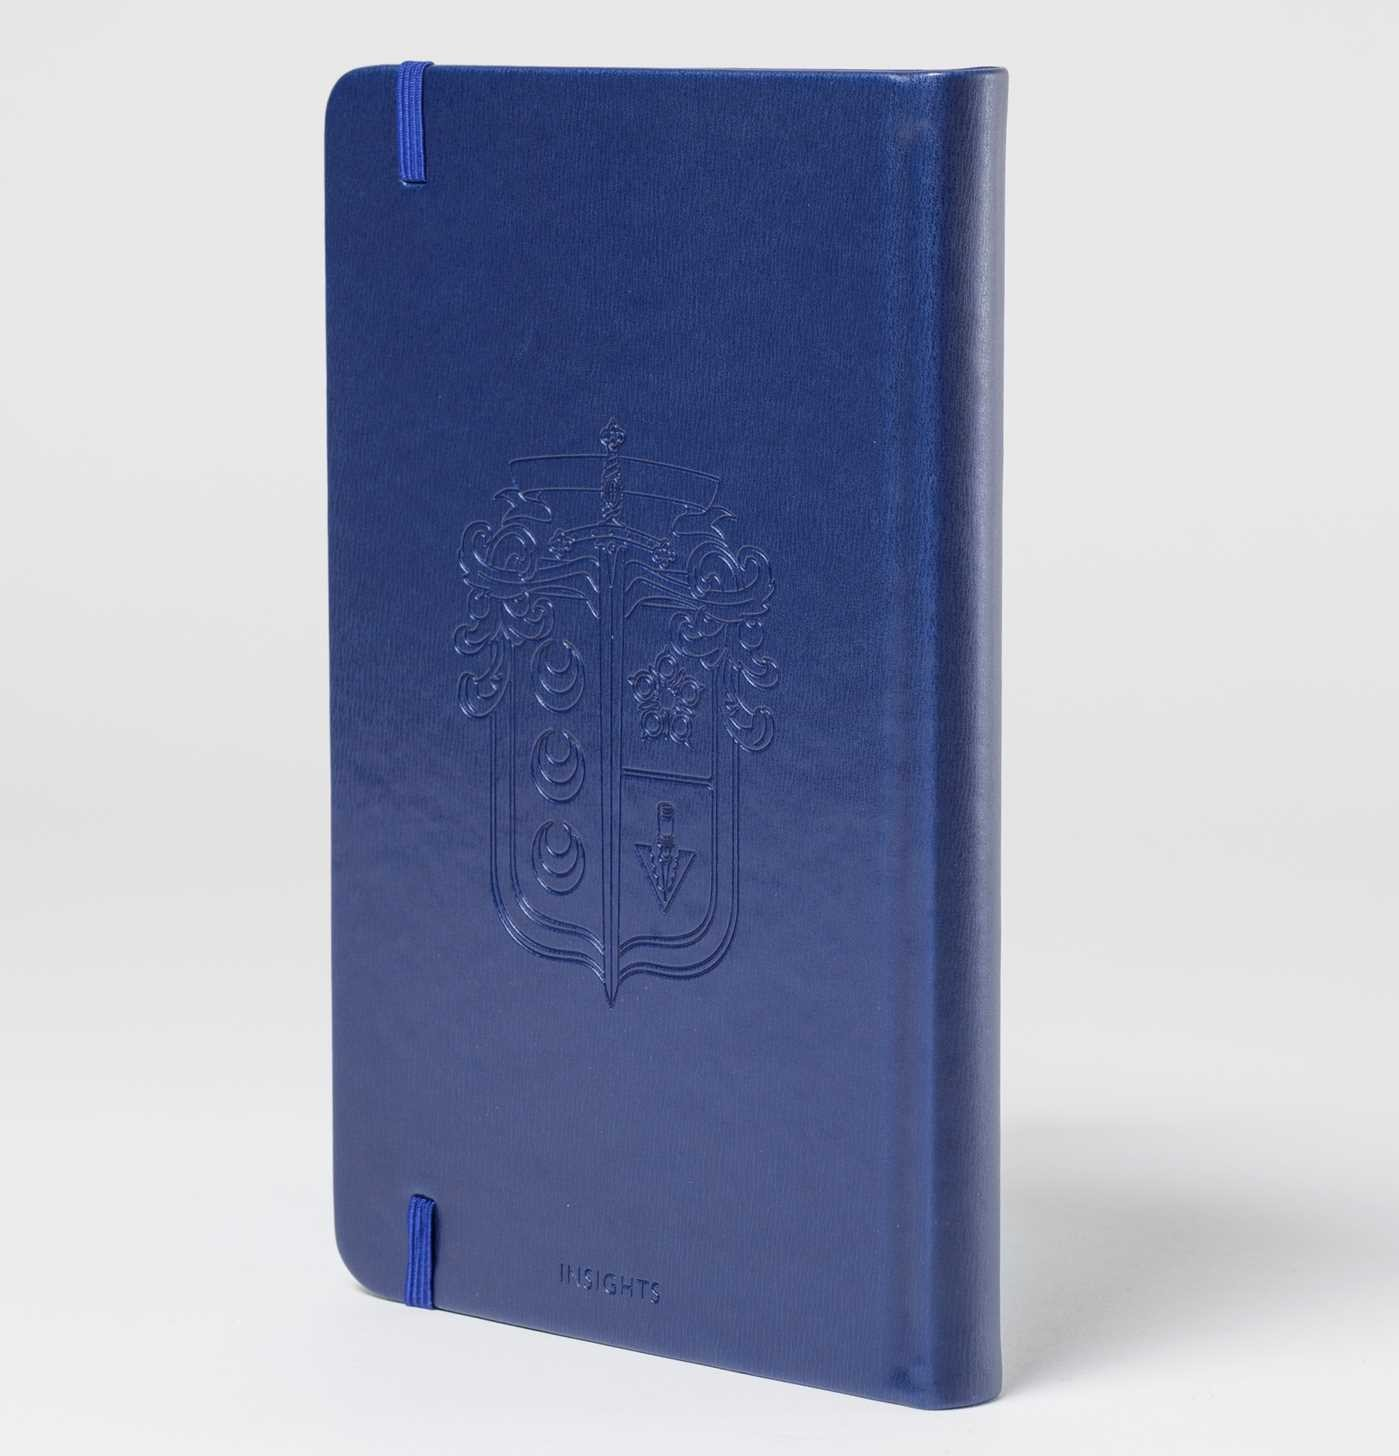 Outlander hardcover ruled journal 9781683831556.in05